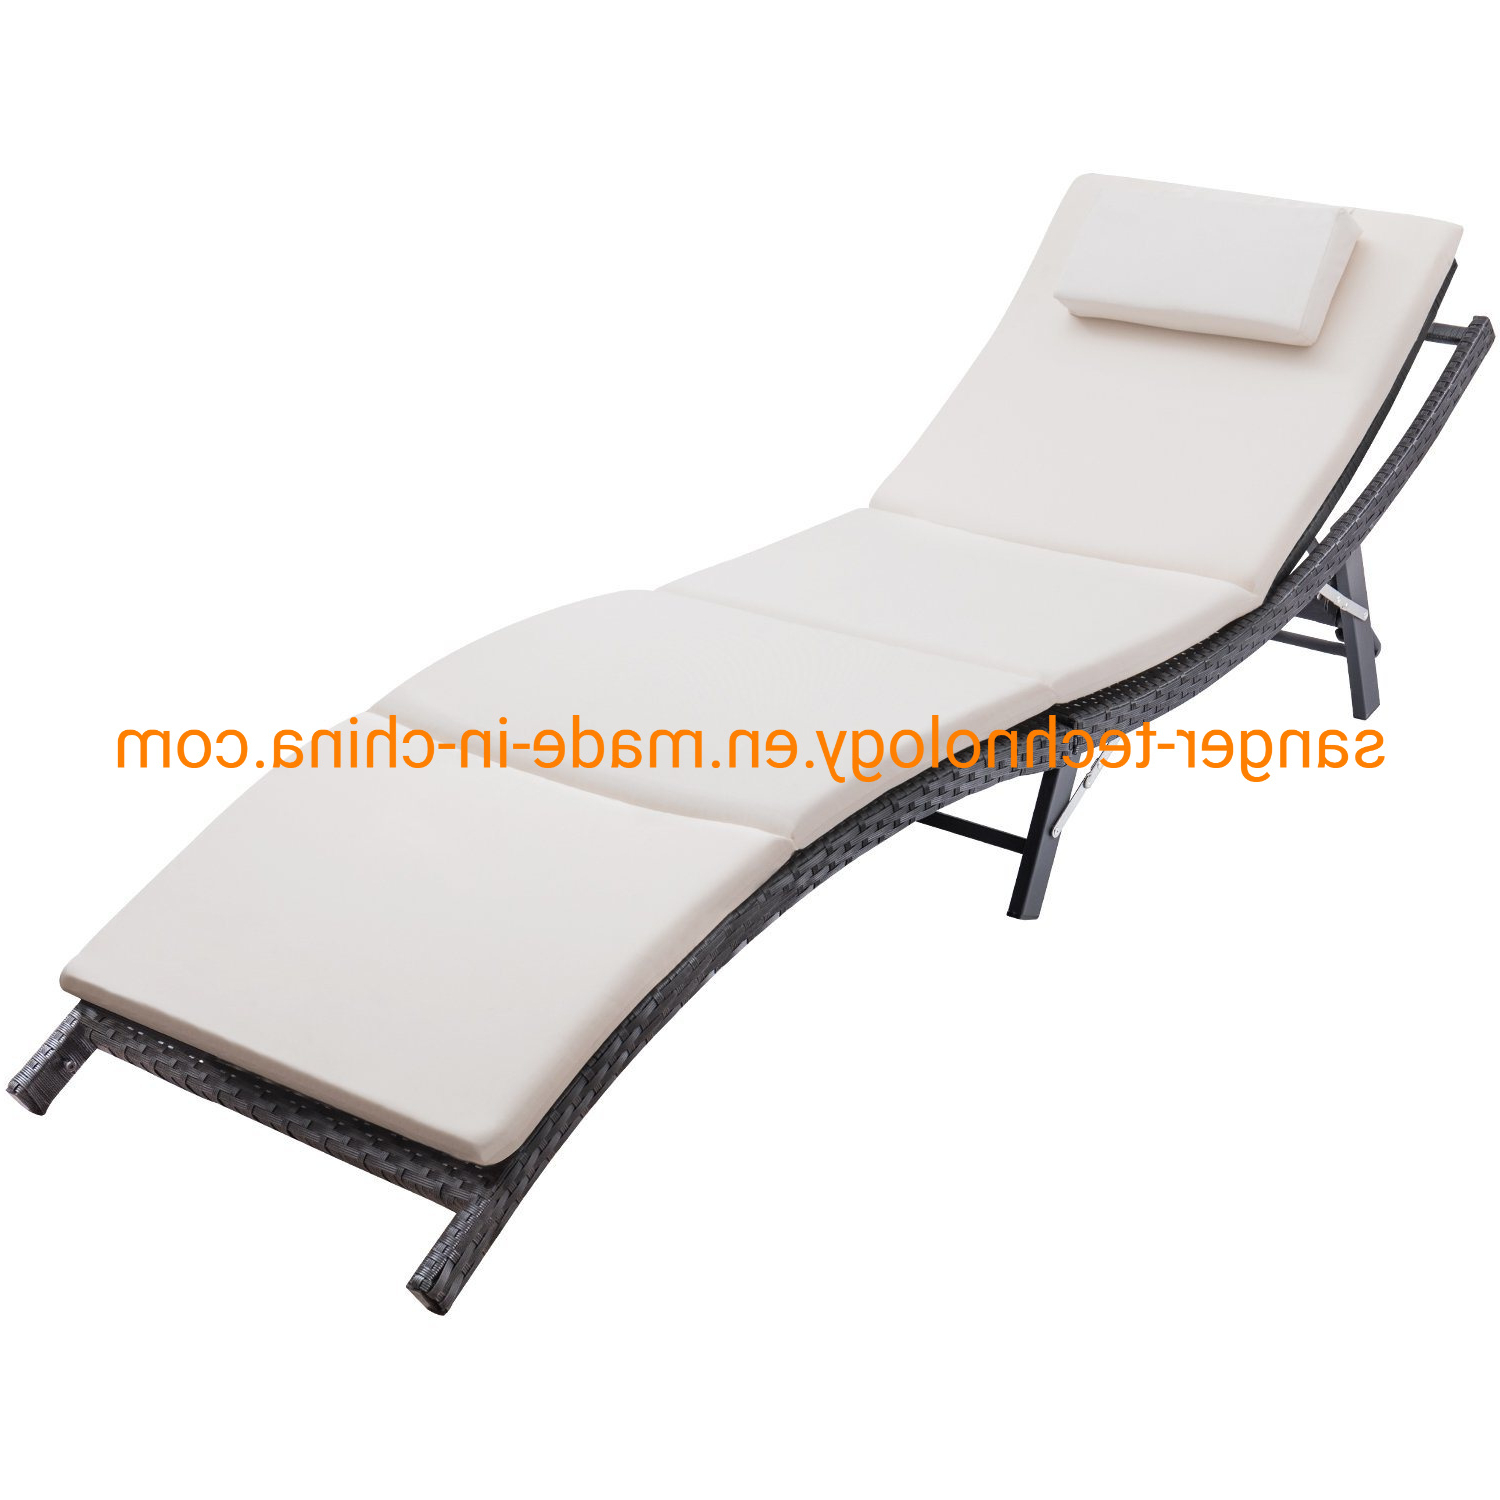 [%[hot Item] Outdoor Patio Chaise Lounge With Cushion Modern Adjustable Pool  Lounge Furniture All Weather Pe Wicker Rattan Backrest Patio Lounger For Pertaining To Current Outdoor Adjustable Rattan Wicker Chaise Pool Chairs With Cushions|outdoor Adjustable Rattan Wicker Chaise Pool Chairs With Cushions Throughout Most Recent [hot Item] Outdoor Patio Chaise Lounge With Cushion Modern Adjustable Pool  Lounge Furniture All Weather Pe Wicker Rattan Backrest Patio Lounger For|best And Newest Outdoor Adjustable Rattan Wicker Chaise Pool Chairs With Cushions Intended For [hot Item] Outdoor Patio Chaise Lounge With Cushion Modern Adjustable Pool  Lounge Furniture All Weather Pe Wicker Rattan Backrest Patio Lounger For|recent [hot Item] Outdoor Patio Chaise Lounge With Cushion Modern Adjustable Pool  Lounge Furniture All Weather Pe Wicker Rattan Backrest Patio Lounger For For Outdoor Adjustable Rattan Wicker Chaise Pool Chairs With Cushions%] (View 13 of 25)